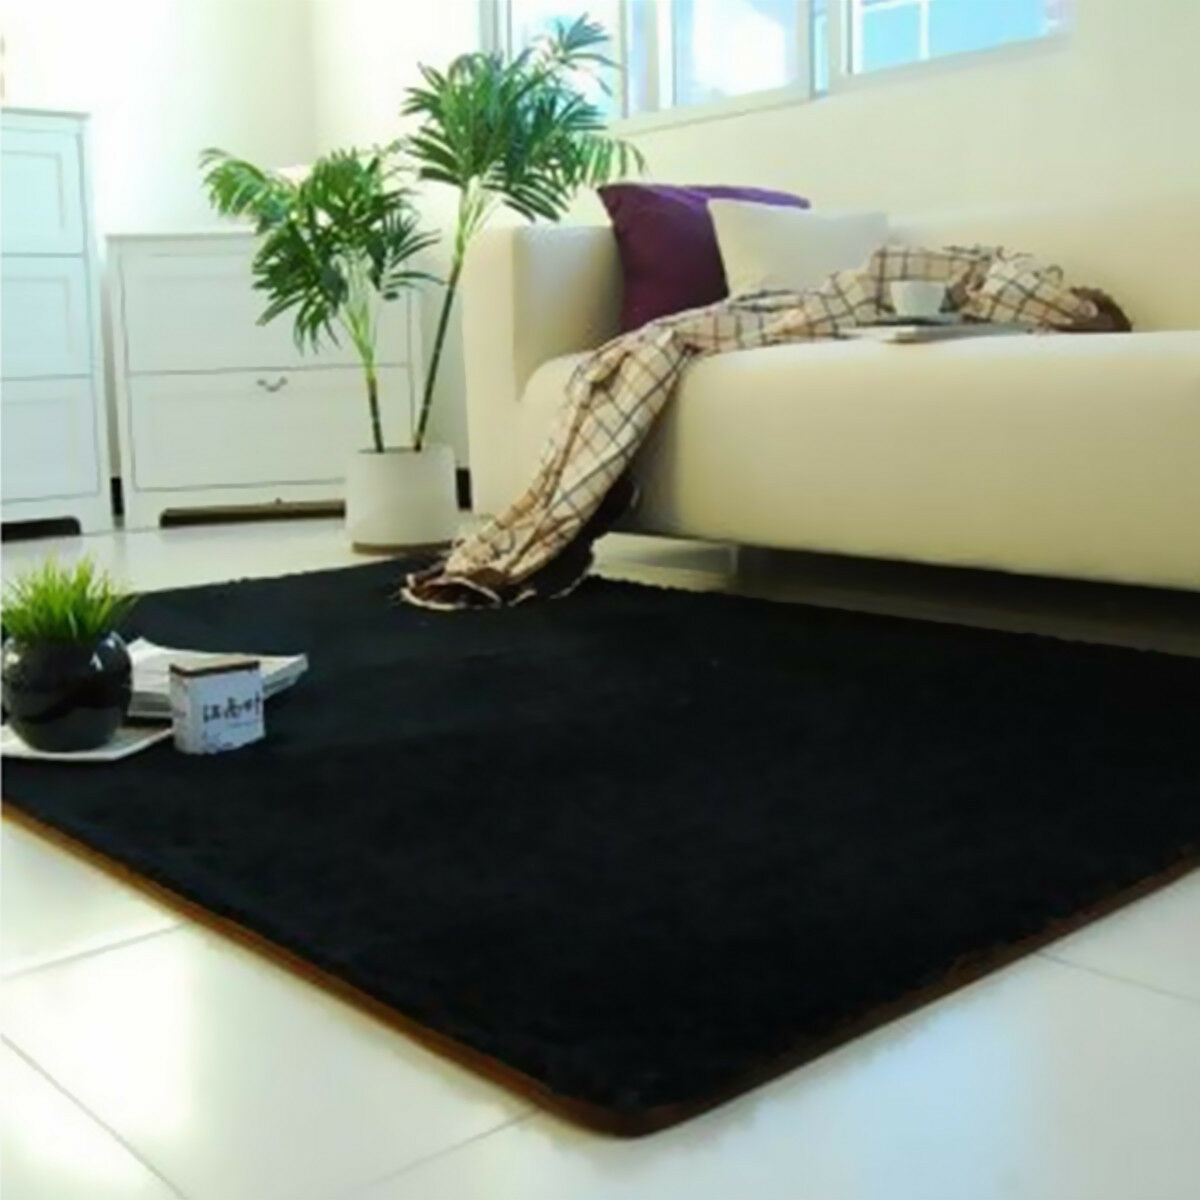 Fluffy Rugs Anti Skid Shaggy Area Rug Dining Room Home Bedroom Carpet Floor  Mat Black | EBay